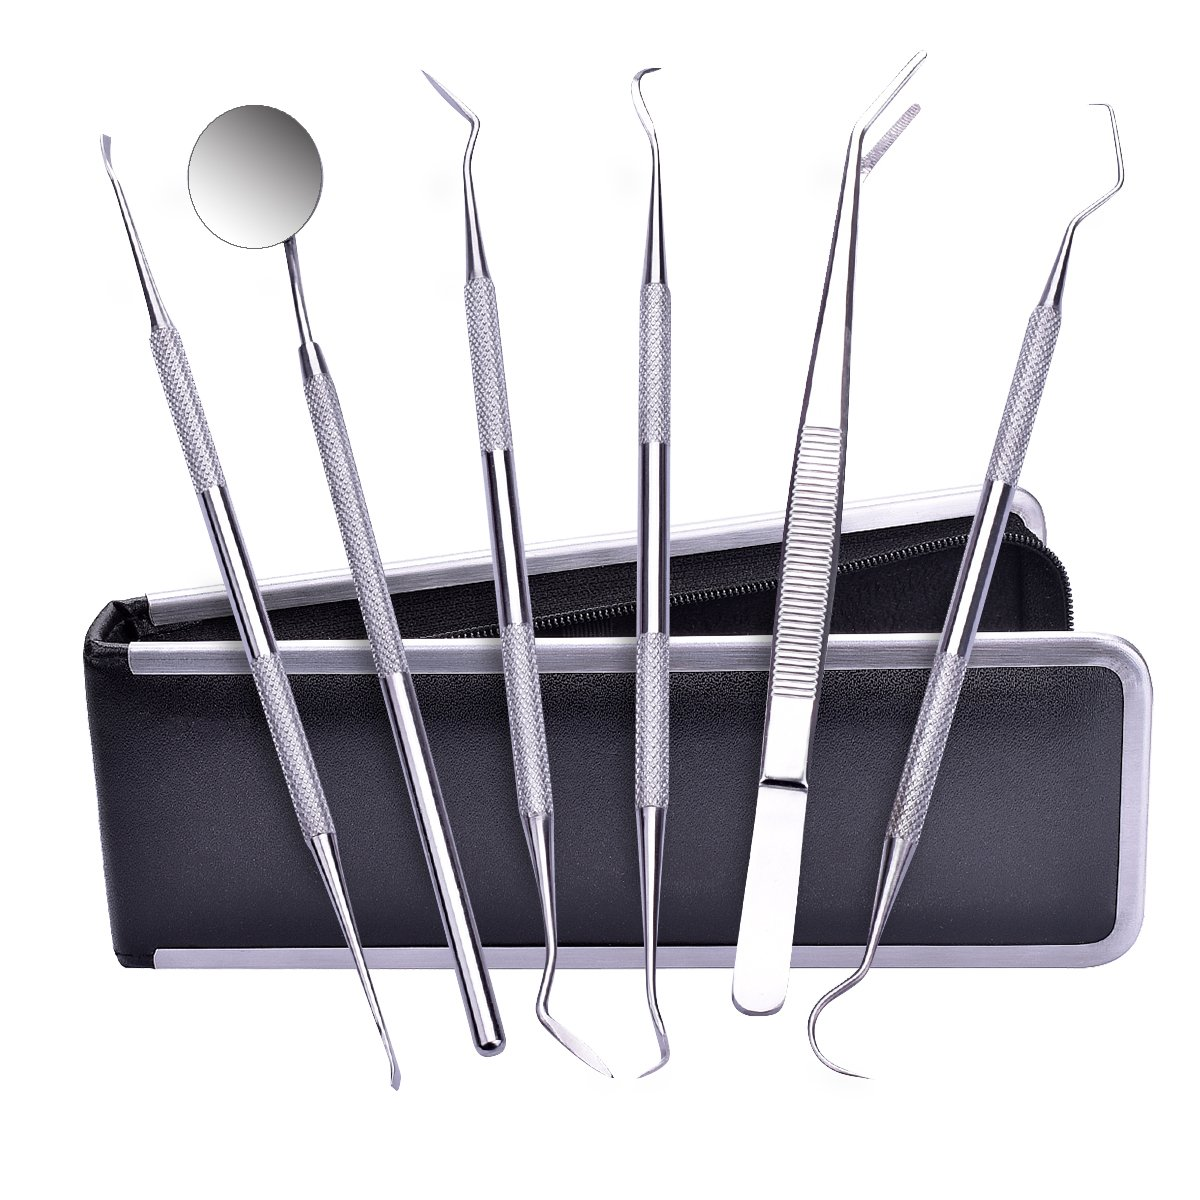 Dental Scraper,TANTAI Dental Pick Hygiene Kit Set- 6 Pack,100% Medical Stainless Steel,Tooth Stains Scraper Remover,Tweezers Dental Gum Floss for Personal or Pet Oral Care Use